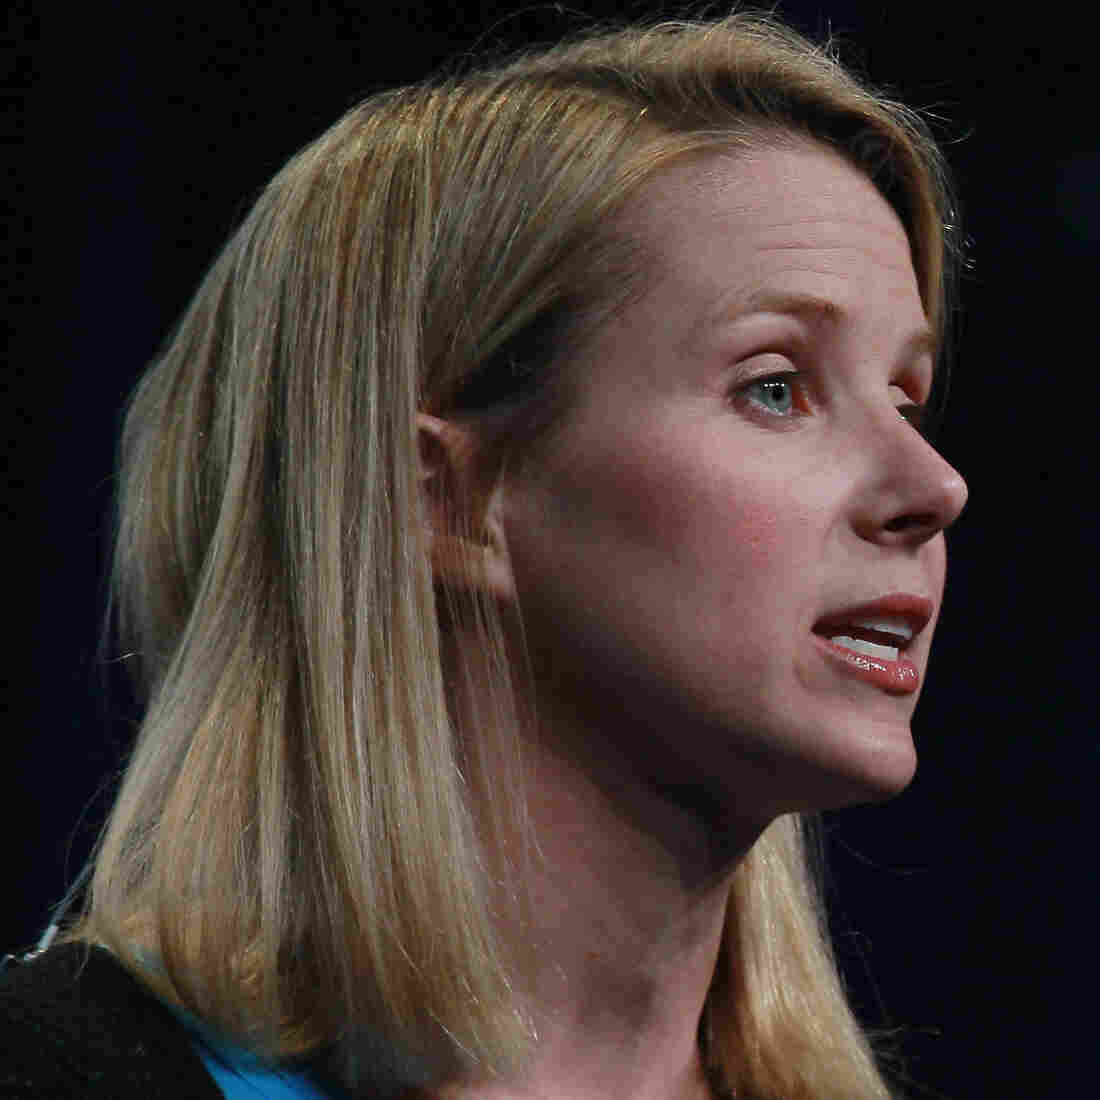 New Yahoo CEO Among A Rare Few: Female Execs With Tech Creds